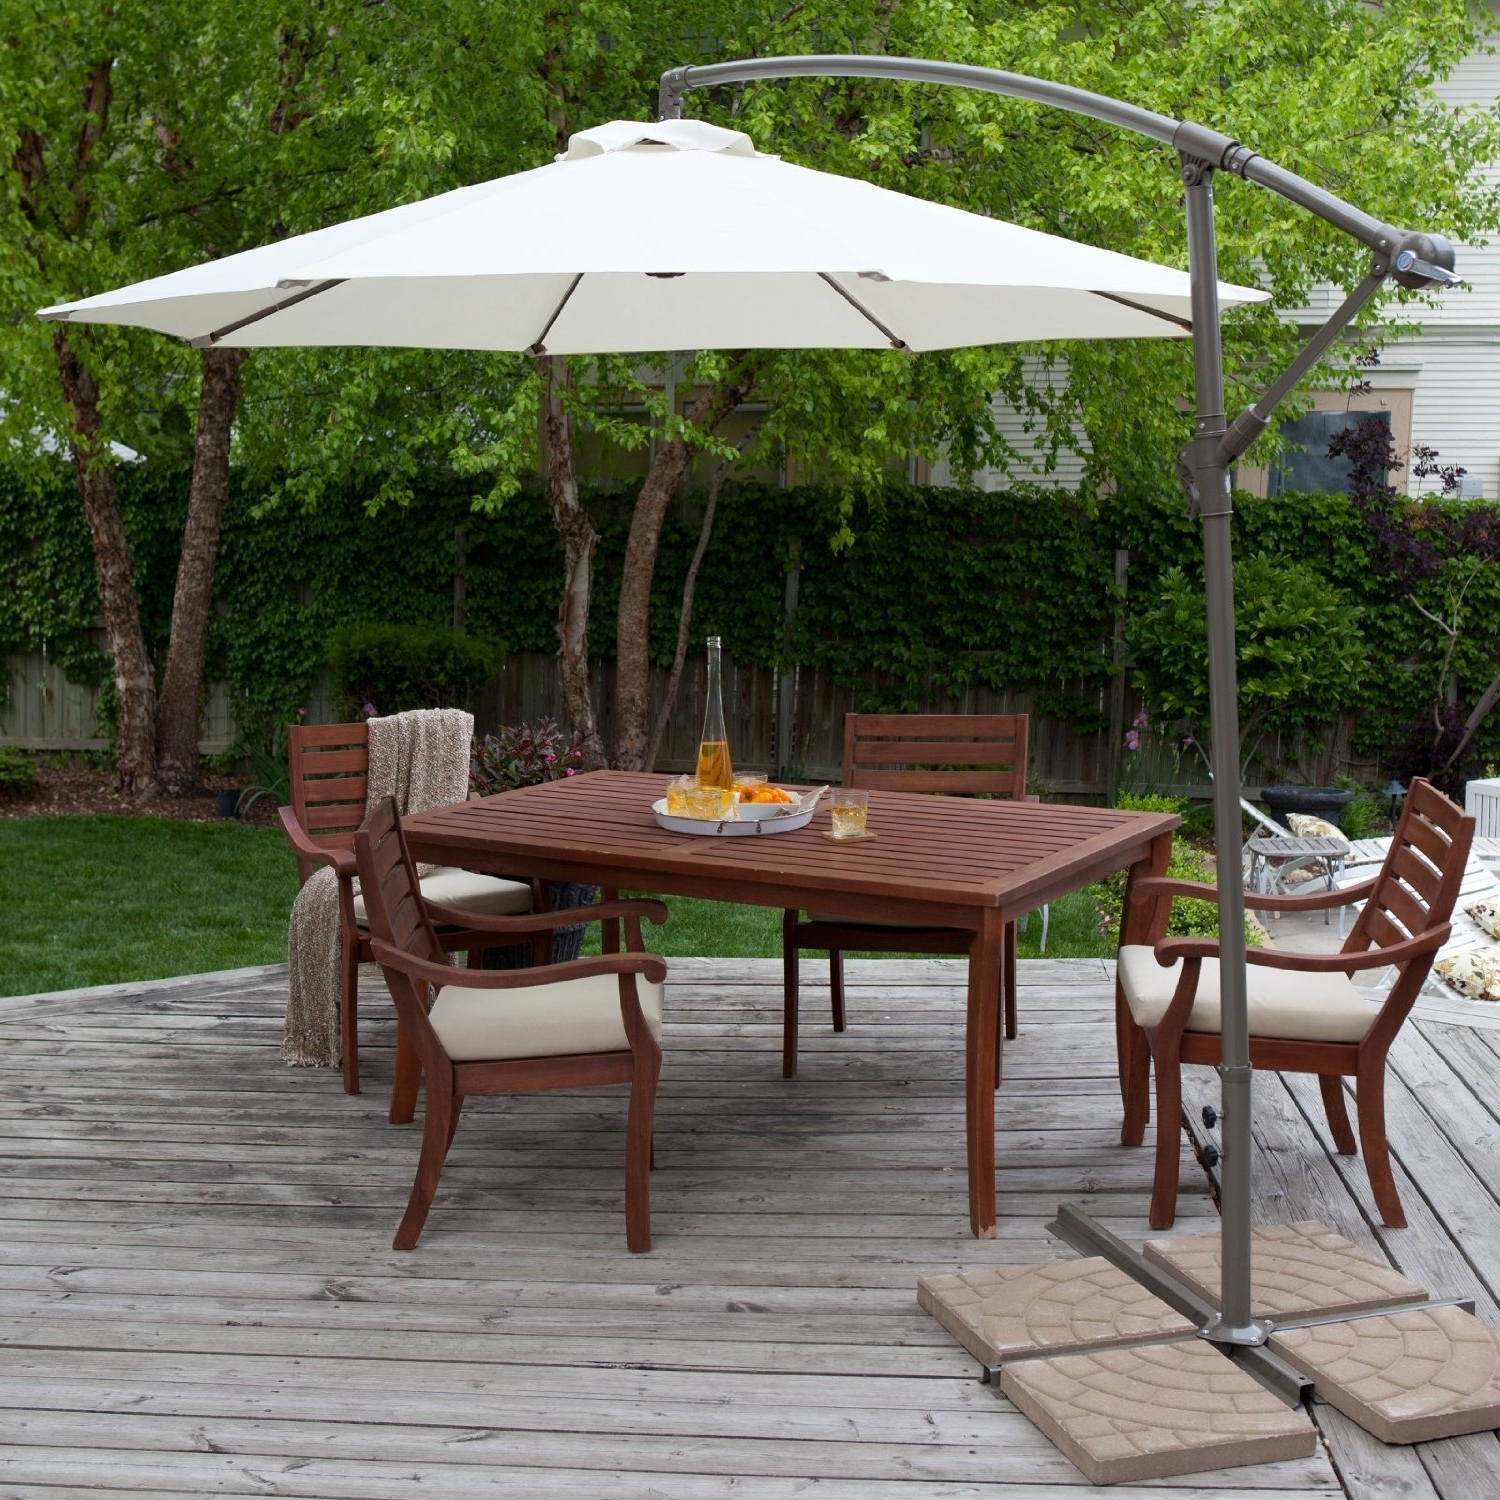 Interior : Patio Table Chairs Umbrella Set New Furniture Sets With Intended For Trendy Patio Sets With Umbrellas (View 7 of 20)